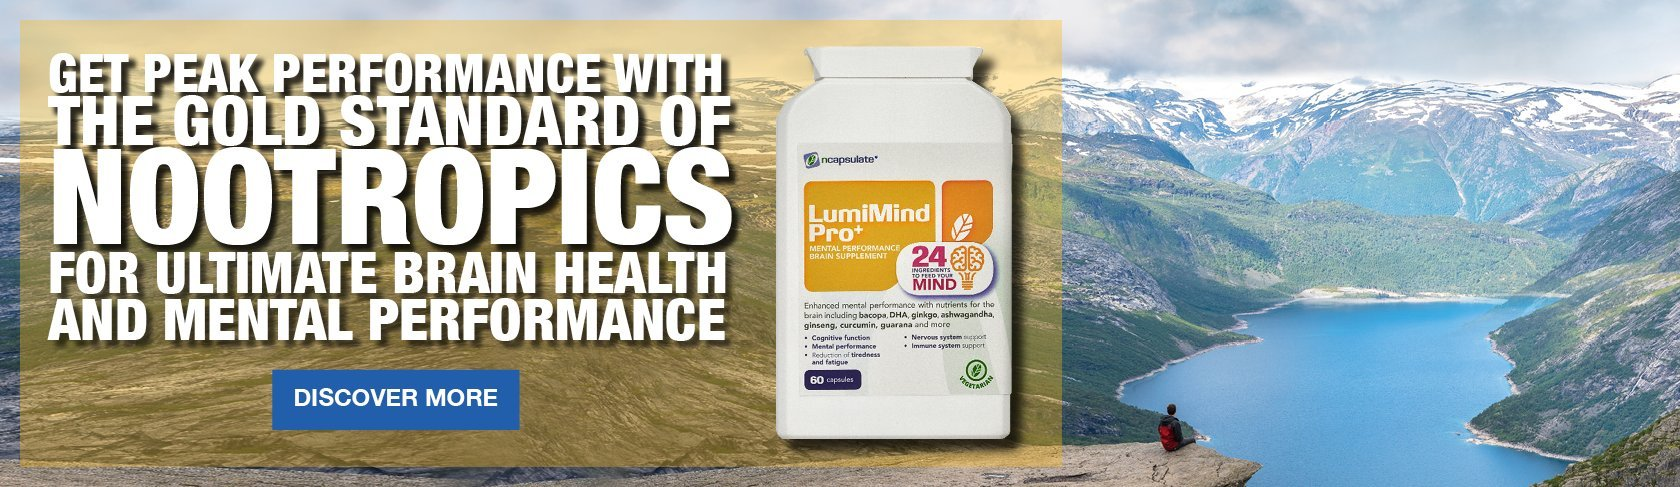 ncapsulate® Premium Health Supplements - LumiMind Pro+ Brain Supplement Nootropics Banner